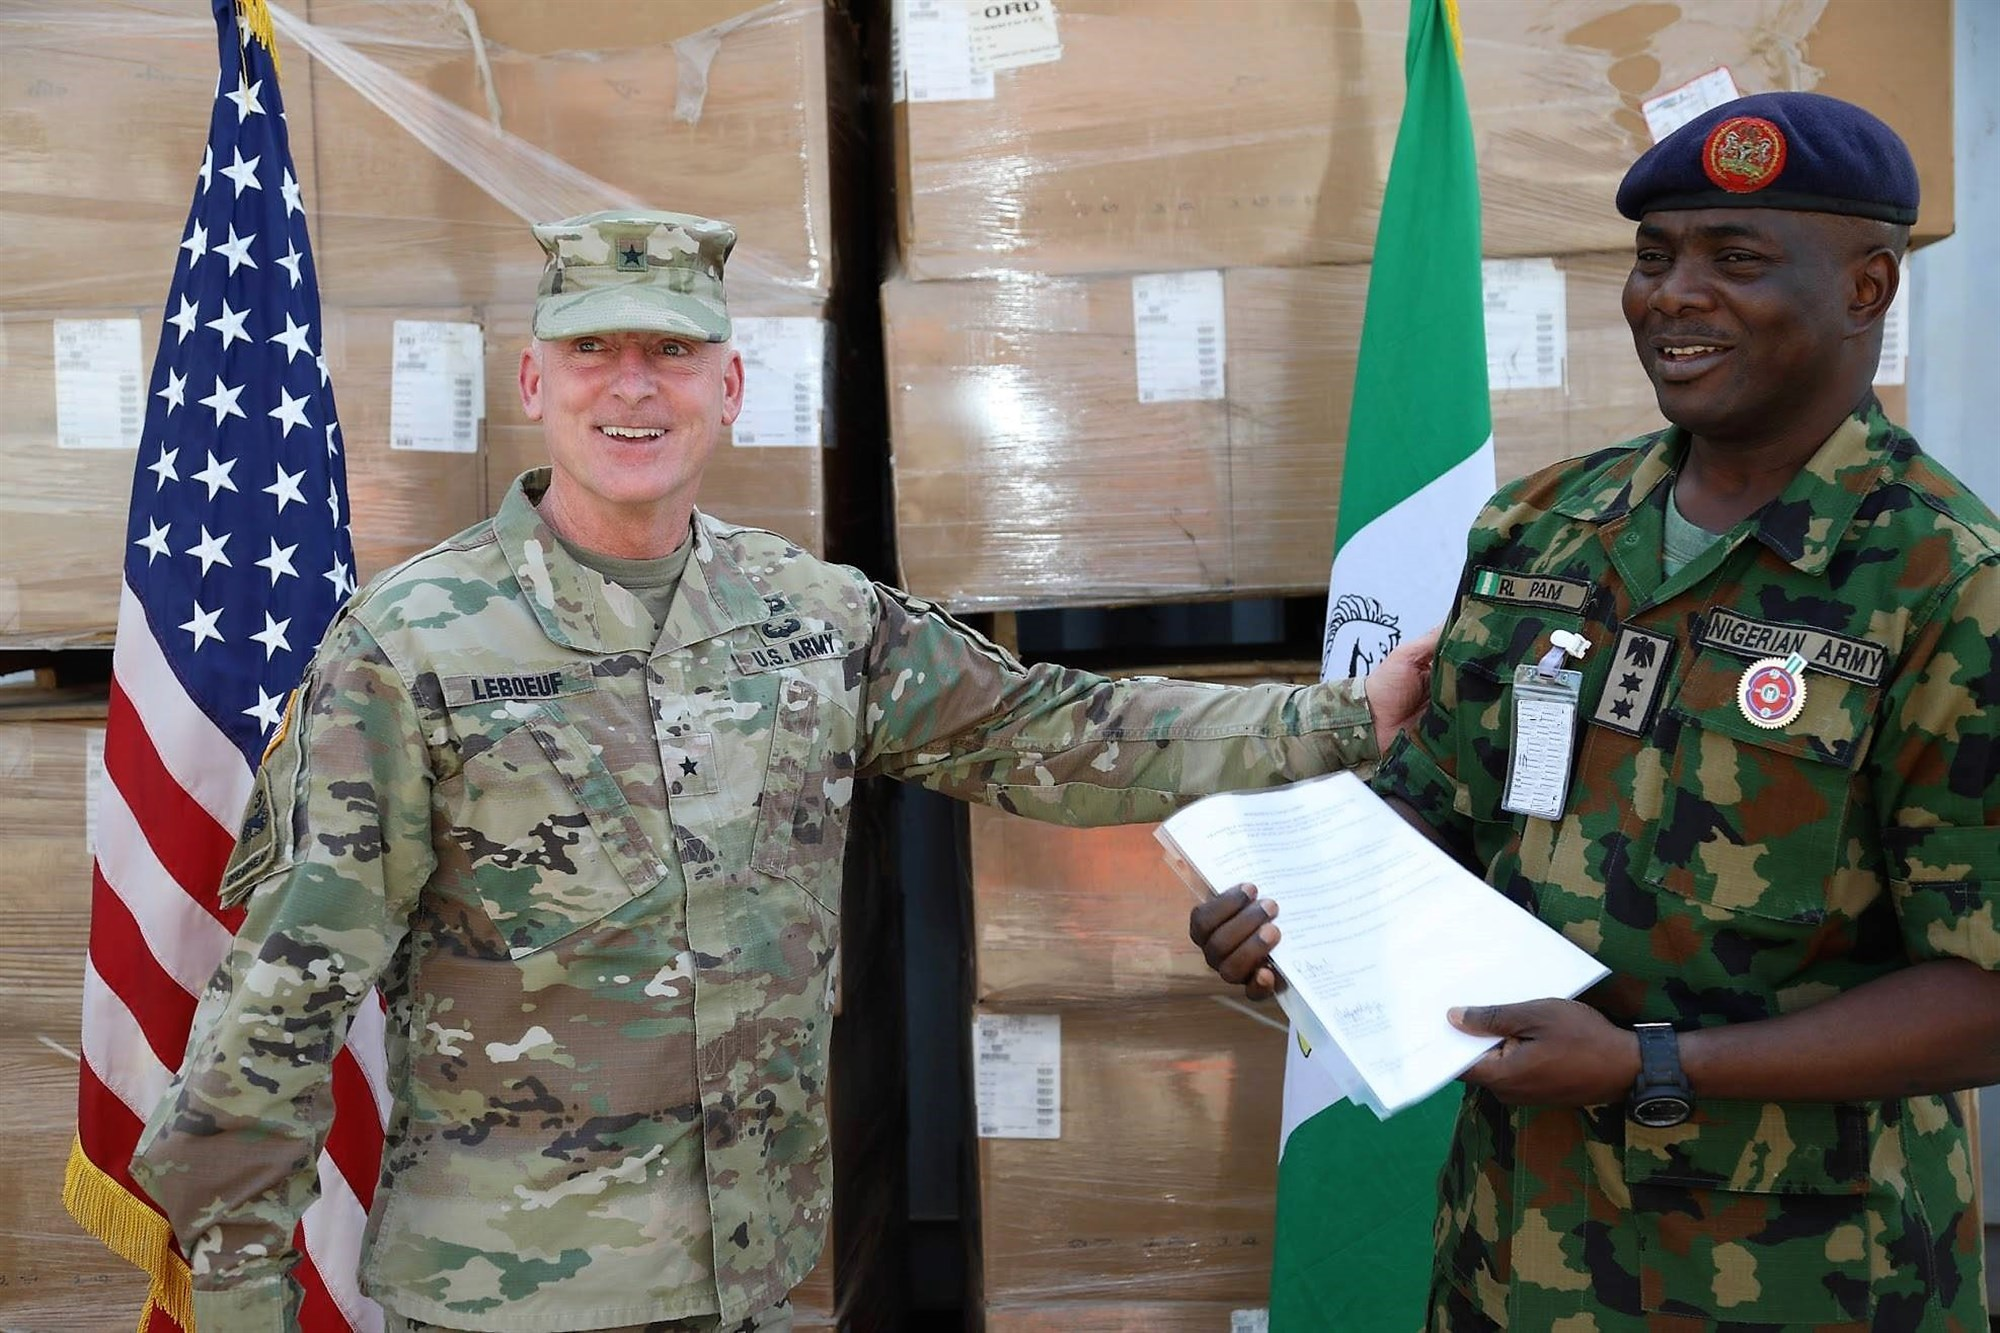 Brig. Gen. Eugene LeBoeuf, the U.S. Army Africa acting commanding general, meets with Col. R.L. Pam during an equipment handover between the U.S. Embassy to Nigeria and Nigeria army's 20th Infantry Battalion in Abuja, Nigeria. LeBoeuf's engagement in Nigeria also included a senior leader engagement with the U.S. ambassador to Nigeria and Nigeria's chief of army staff, and a speech to students at the Nigeria Army War College. (Courtesy photo/U.S. Embassy and Consulate in Nigeria)